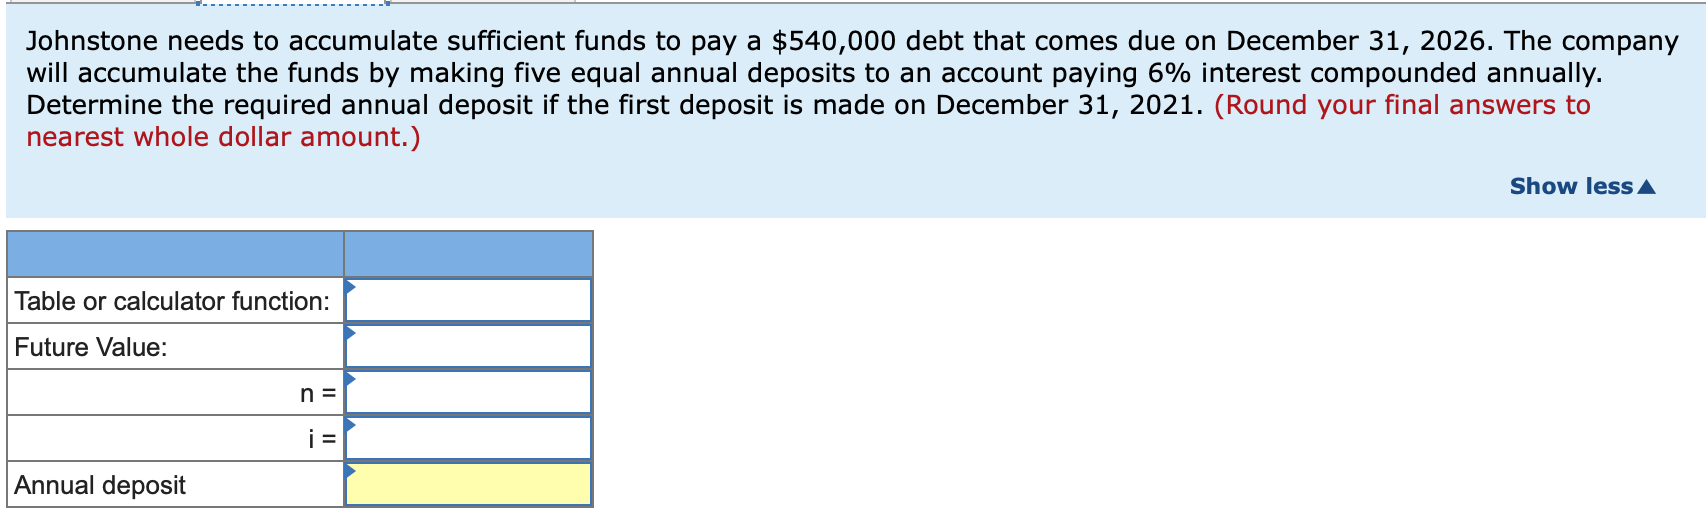 Johnstone needs to accumulate sufficient funds to pay a $540,000 debt that comes due on December 31, 2026. The company will a